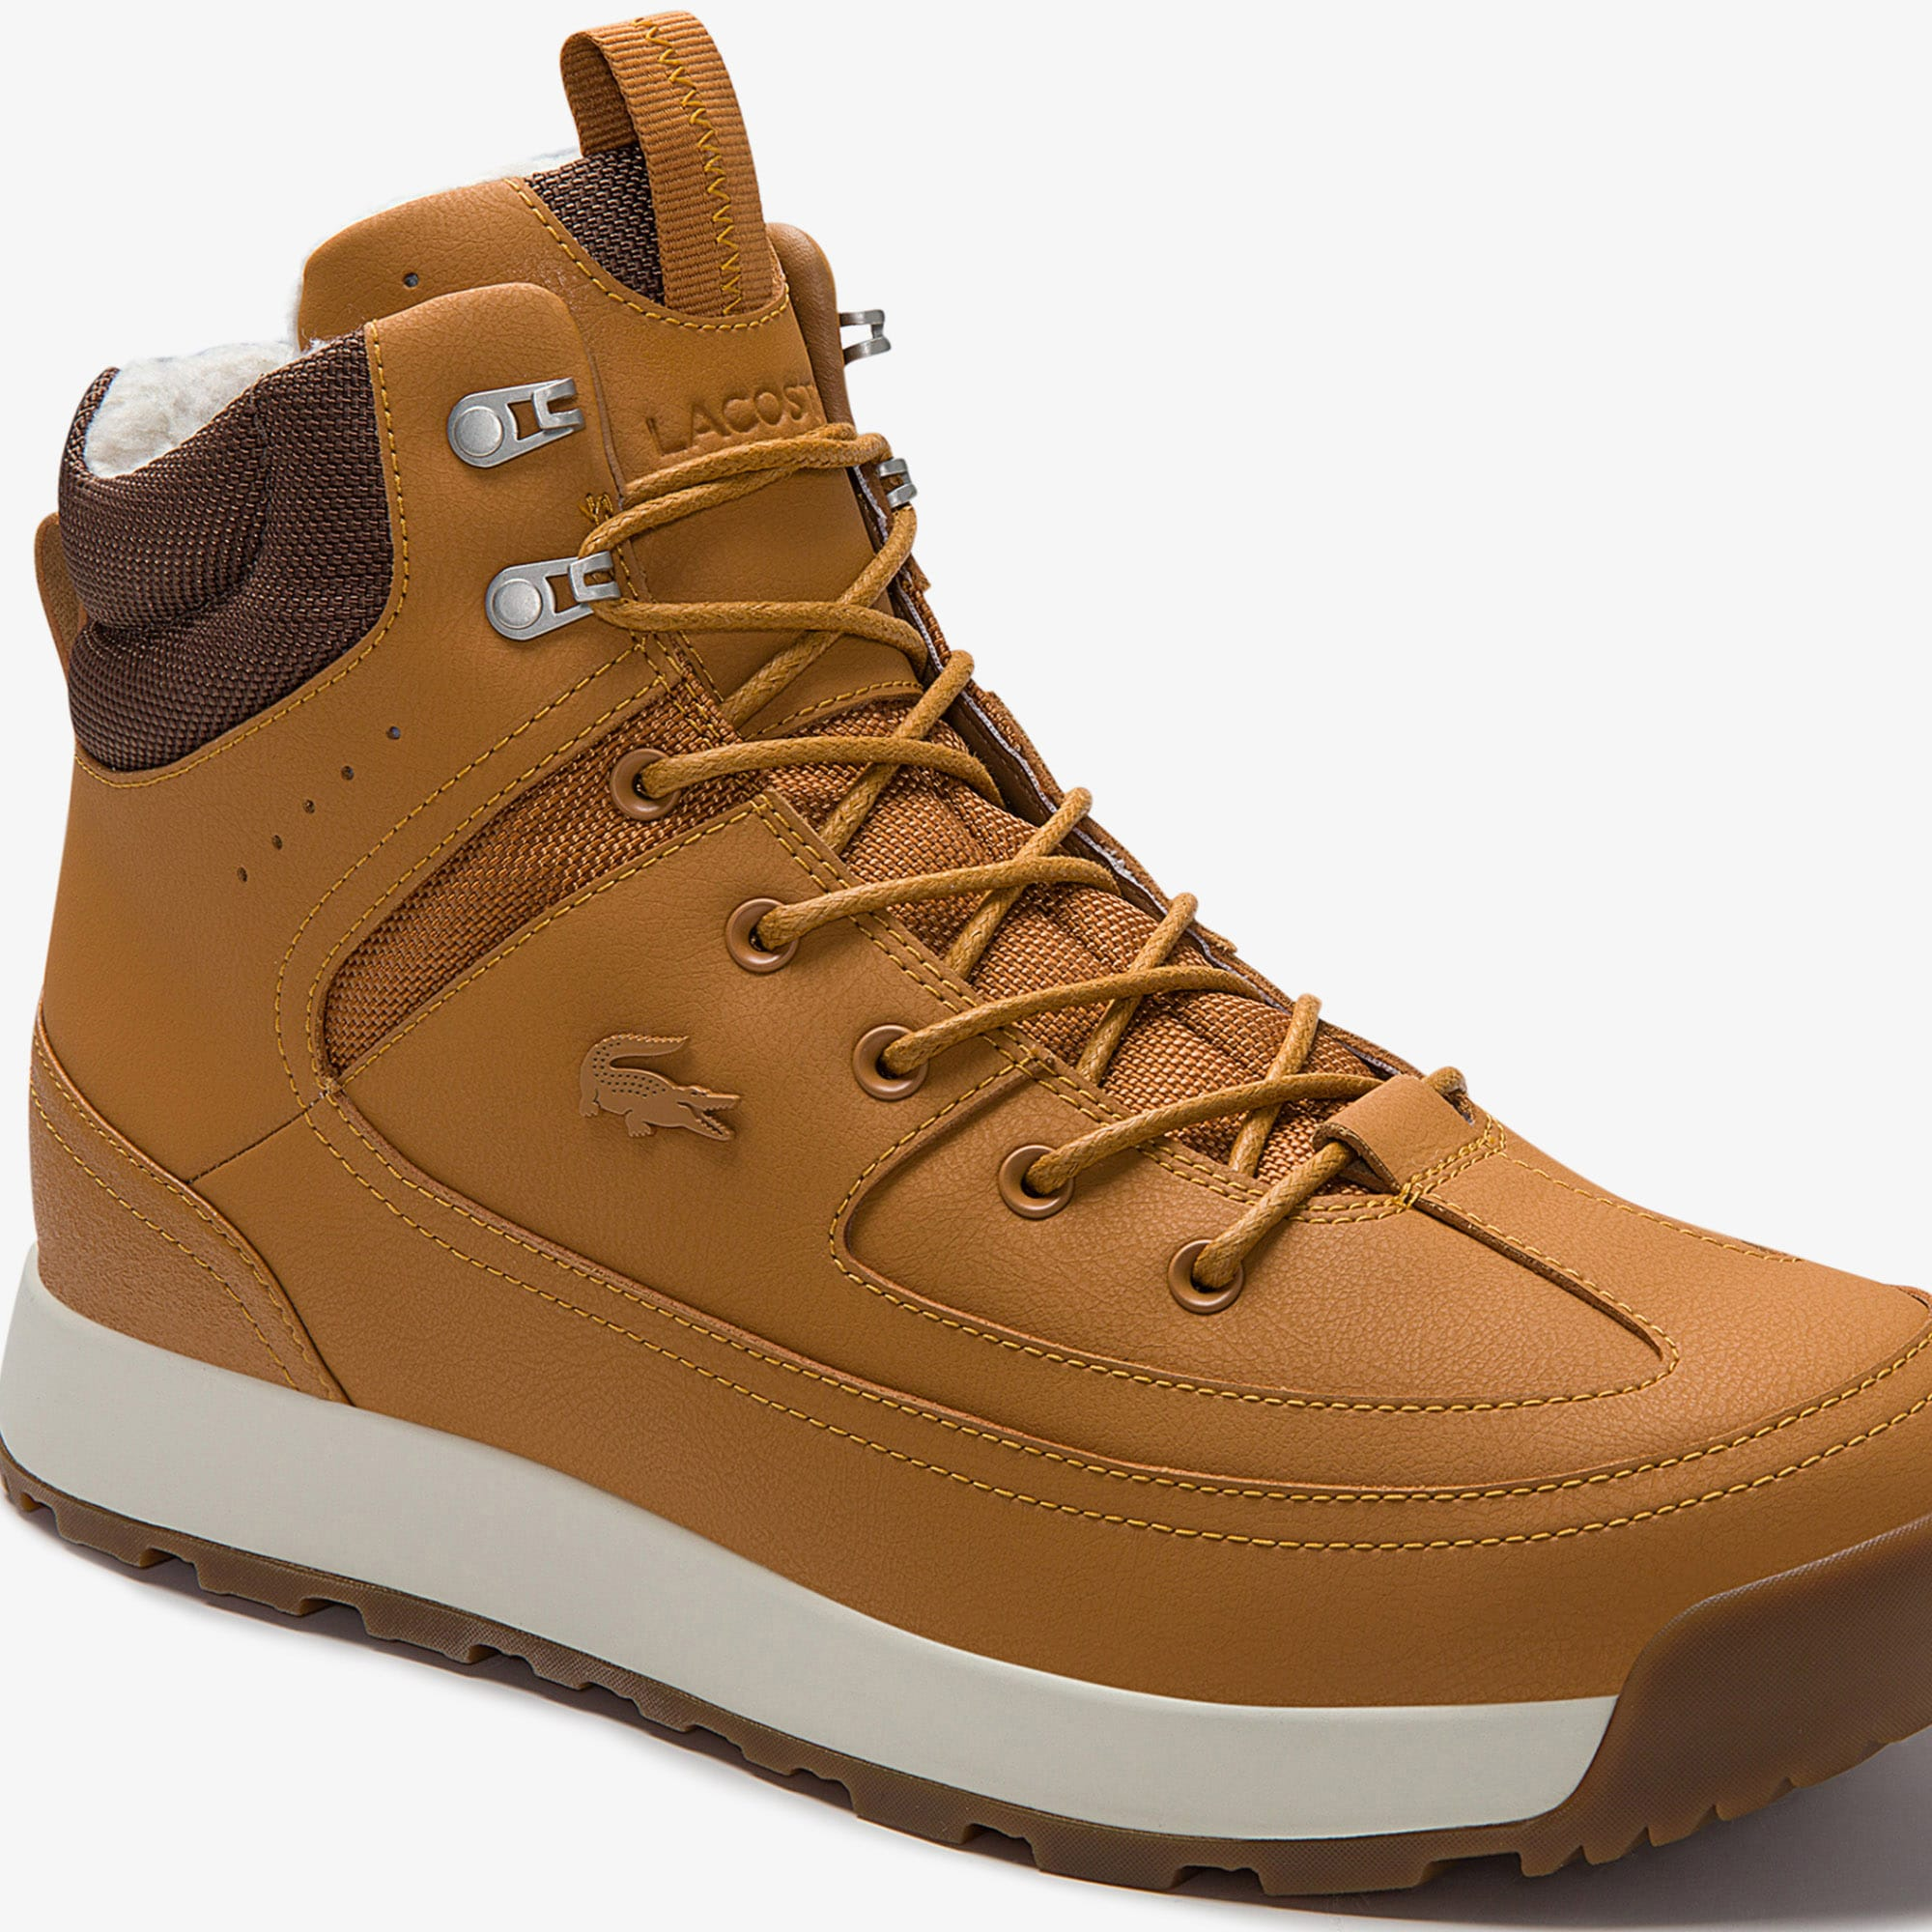 6f7dc719e75 Men's Urban Breaker Leather and Textile Hiking Boots | LACOSTE